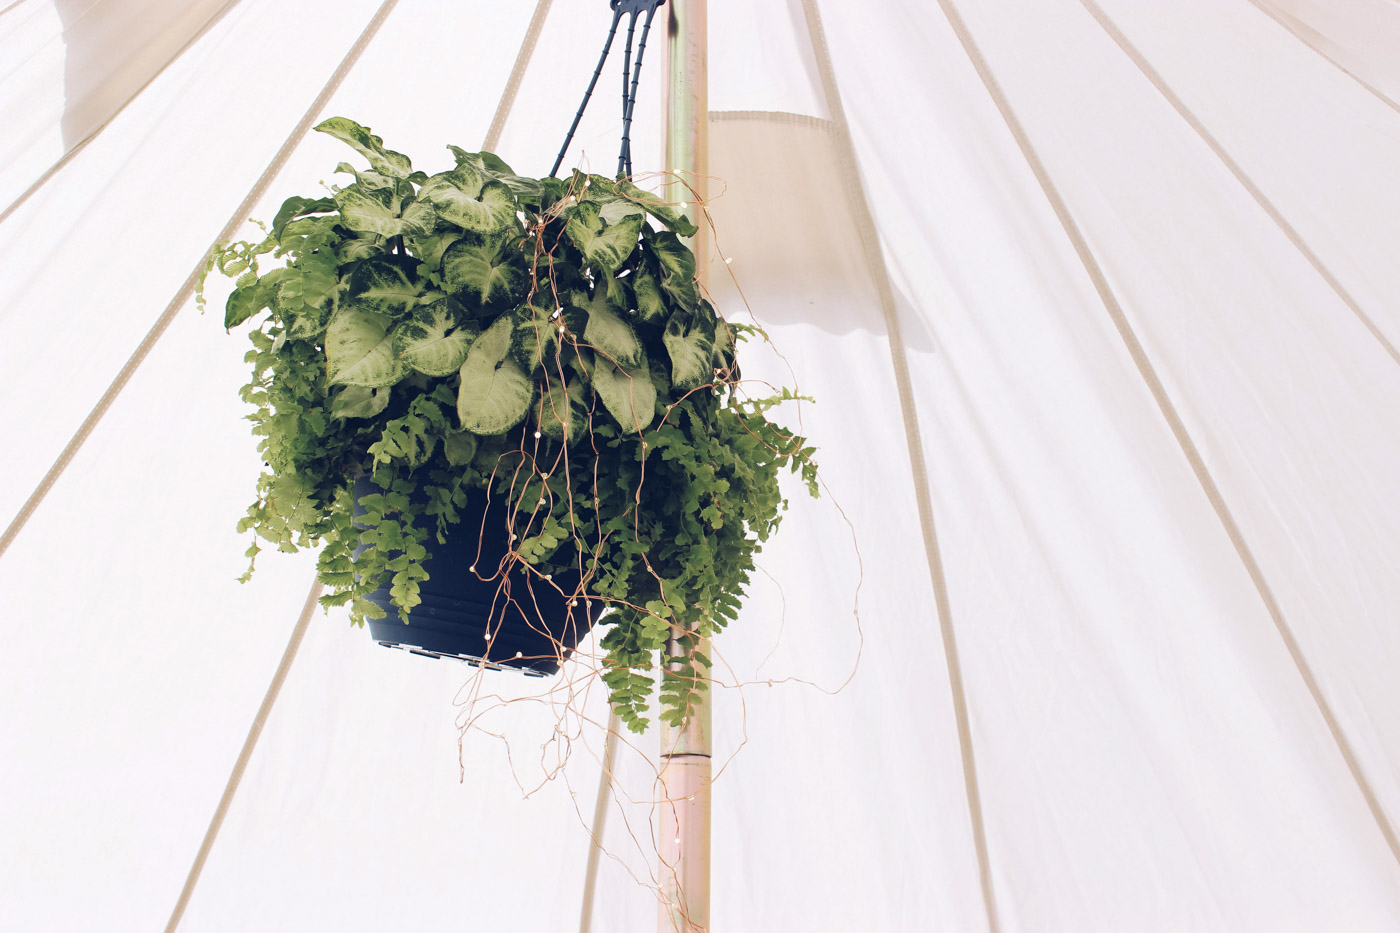 the_Collection_co_grazing_table_cairns_weddings_catering_grazing_platter_hire_pop_up_picnic_bell_tent_event_hire_styling-12-2.jpg